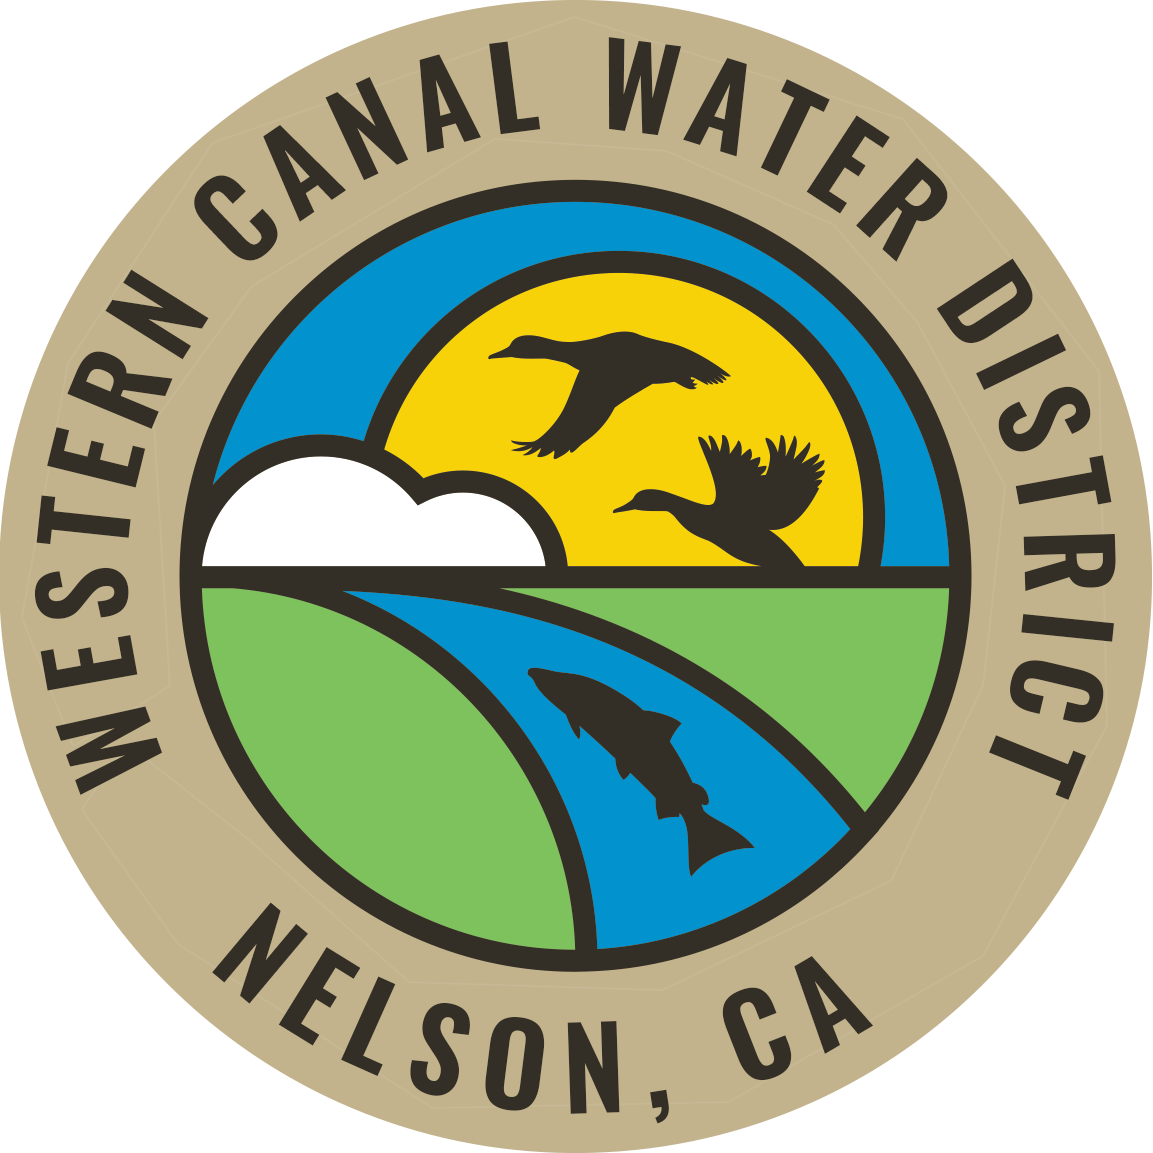 Western Canal Water District